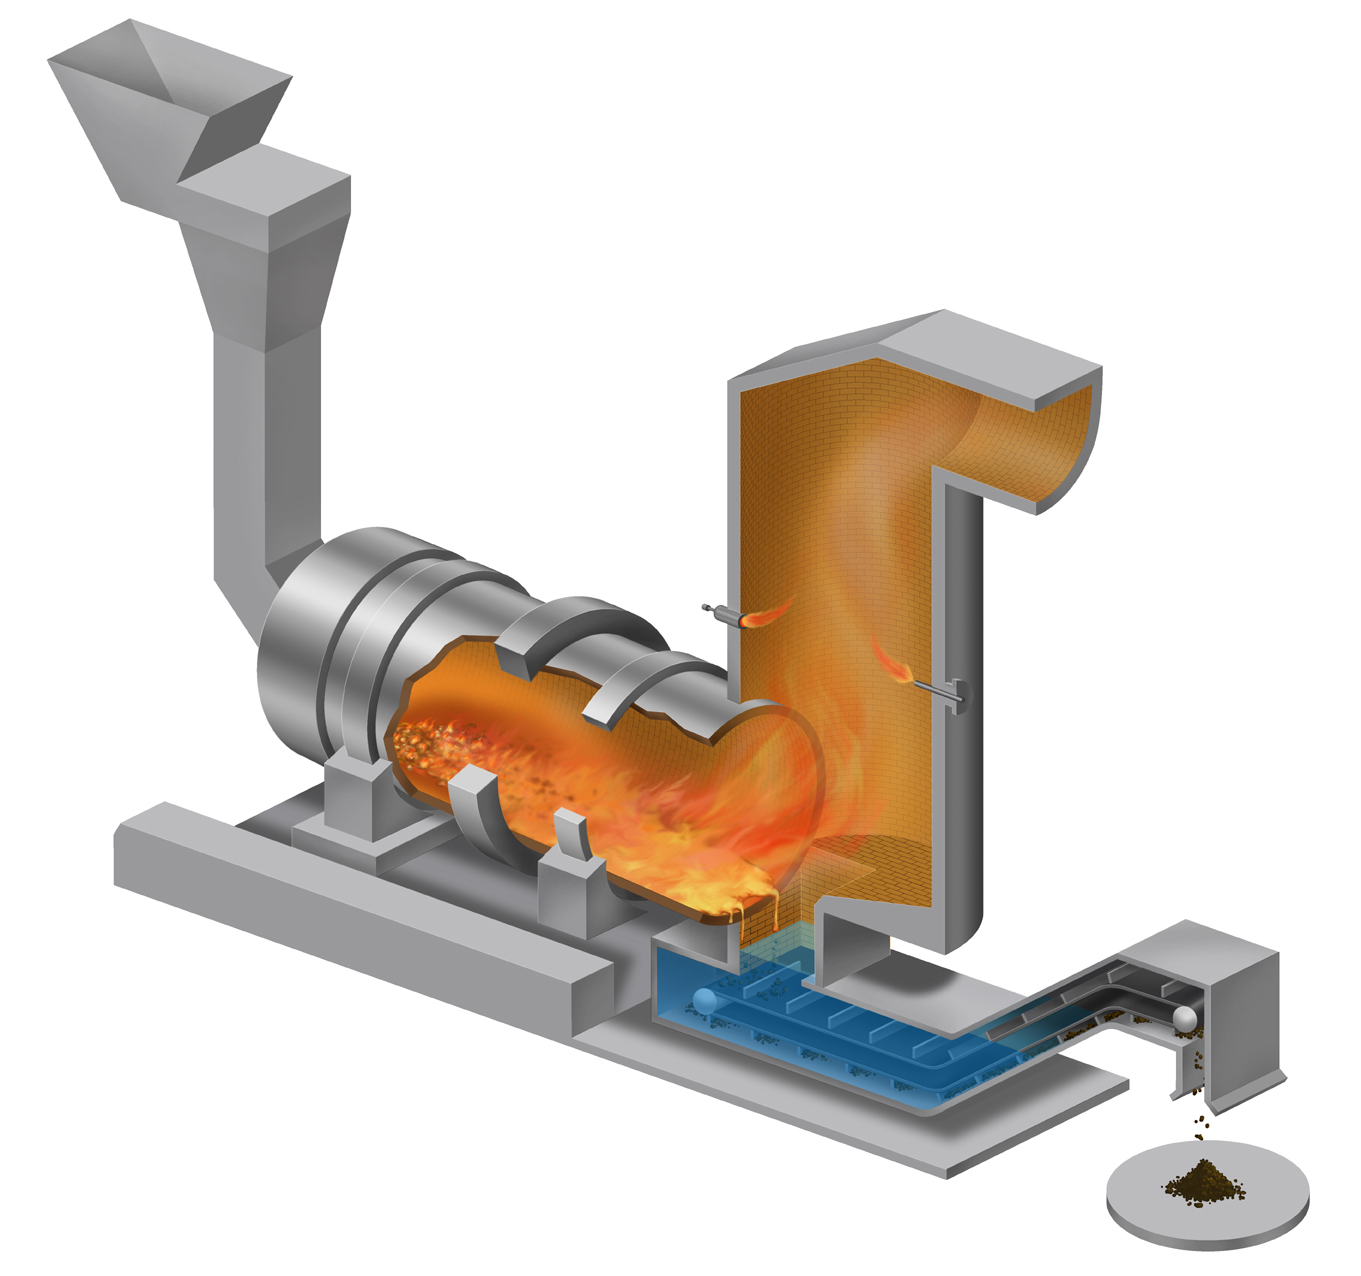 Melting Kiln System